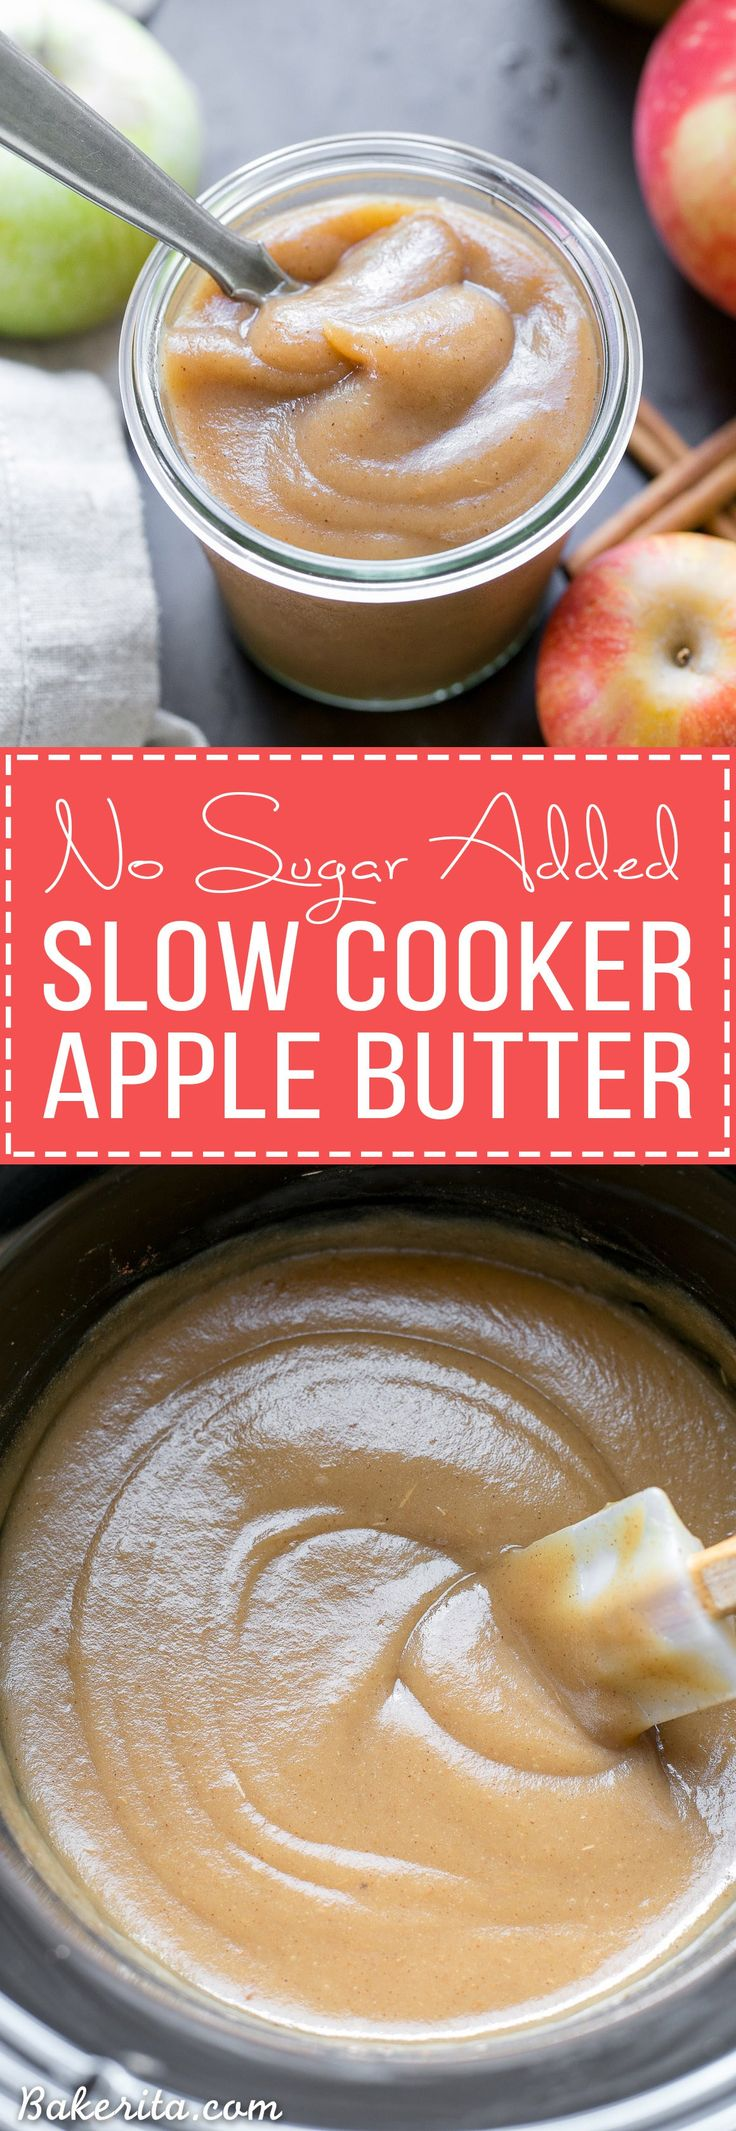 This Slow Cooker Apple Butter has no sugar added - just fresh apples, cinnamon, nutmeg, and lemon juice. This healthy homemade apple butter can be enjoyed on toast, stirred into oatmeal or yogurt, or eaten by the spoonful! It's Paleo-friendly and vegan.